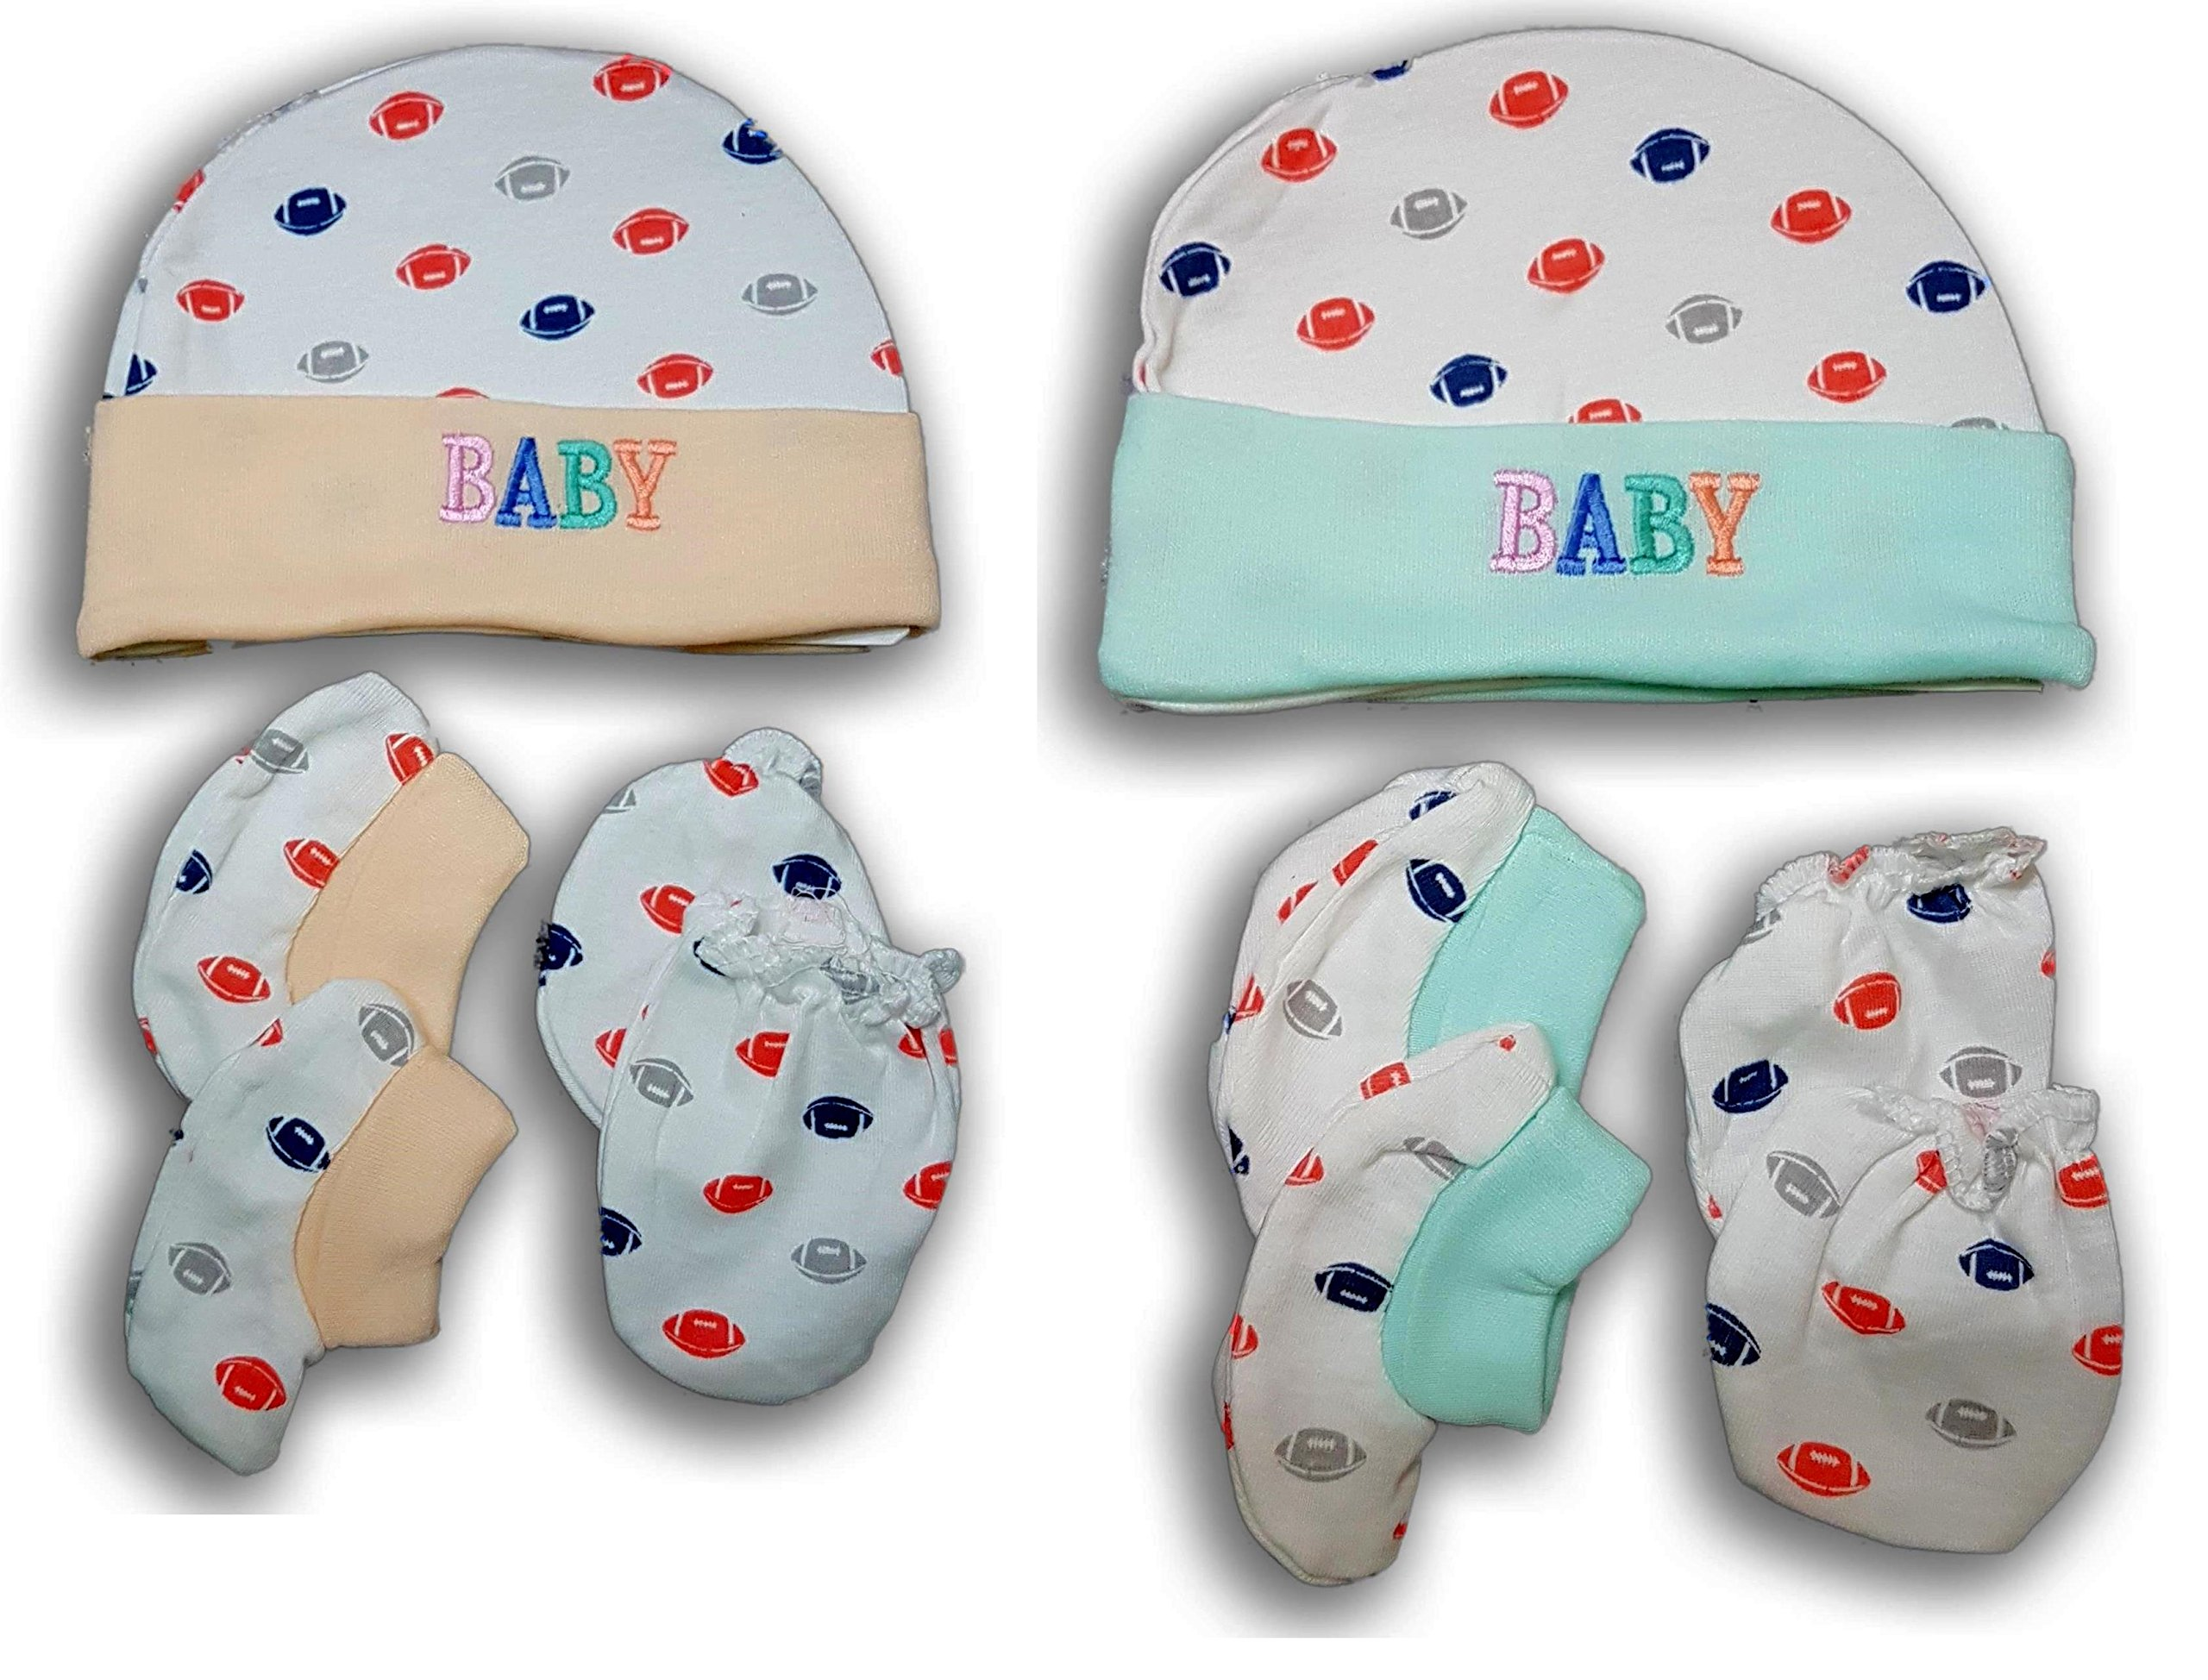 f20733c0e FeatherTouch New Born Baby Cap, Mittens Booties Combo Set, 0-3 Months,  Infant, White Printed, Pack of 2 Sets